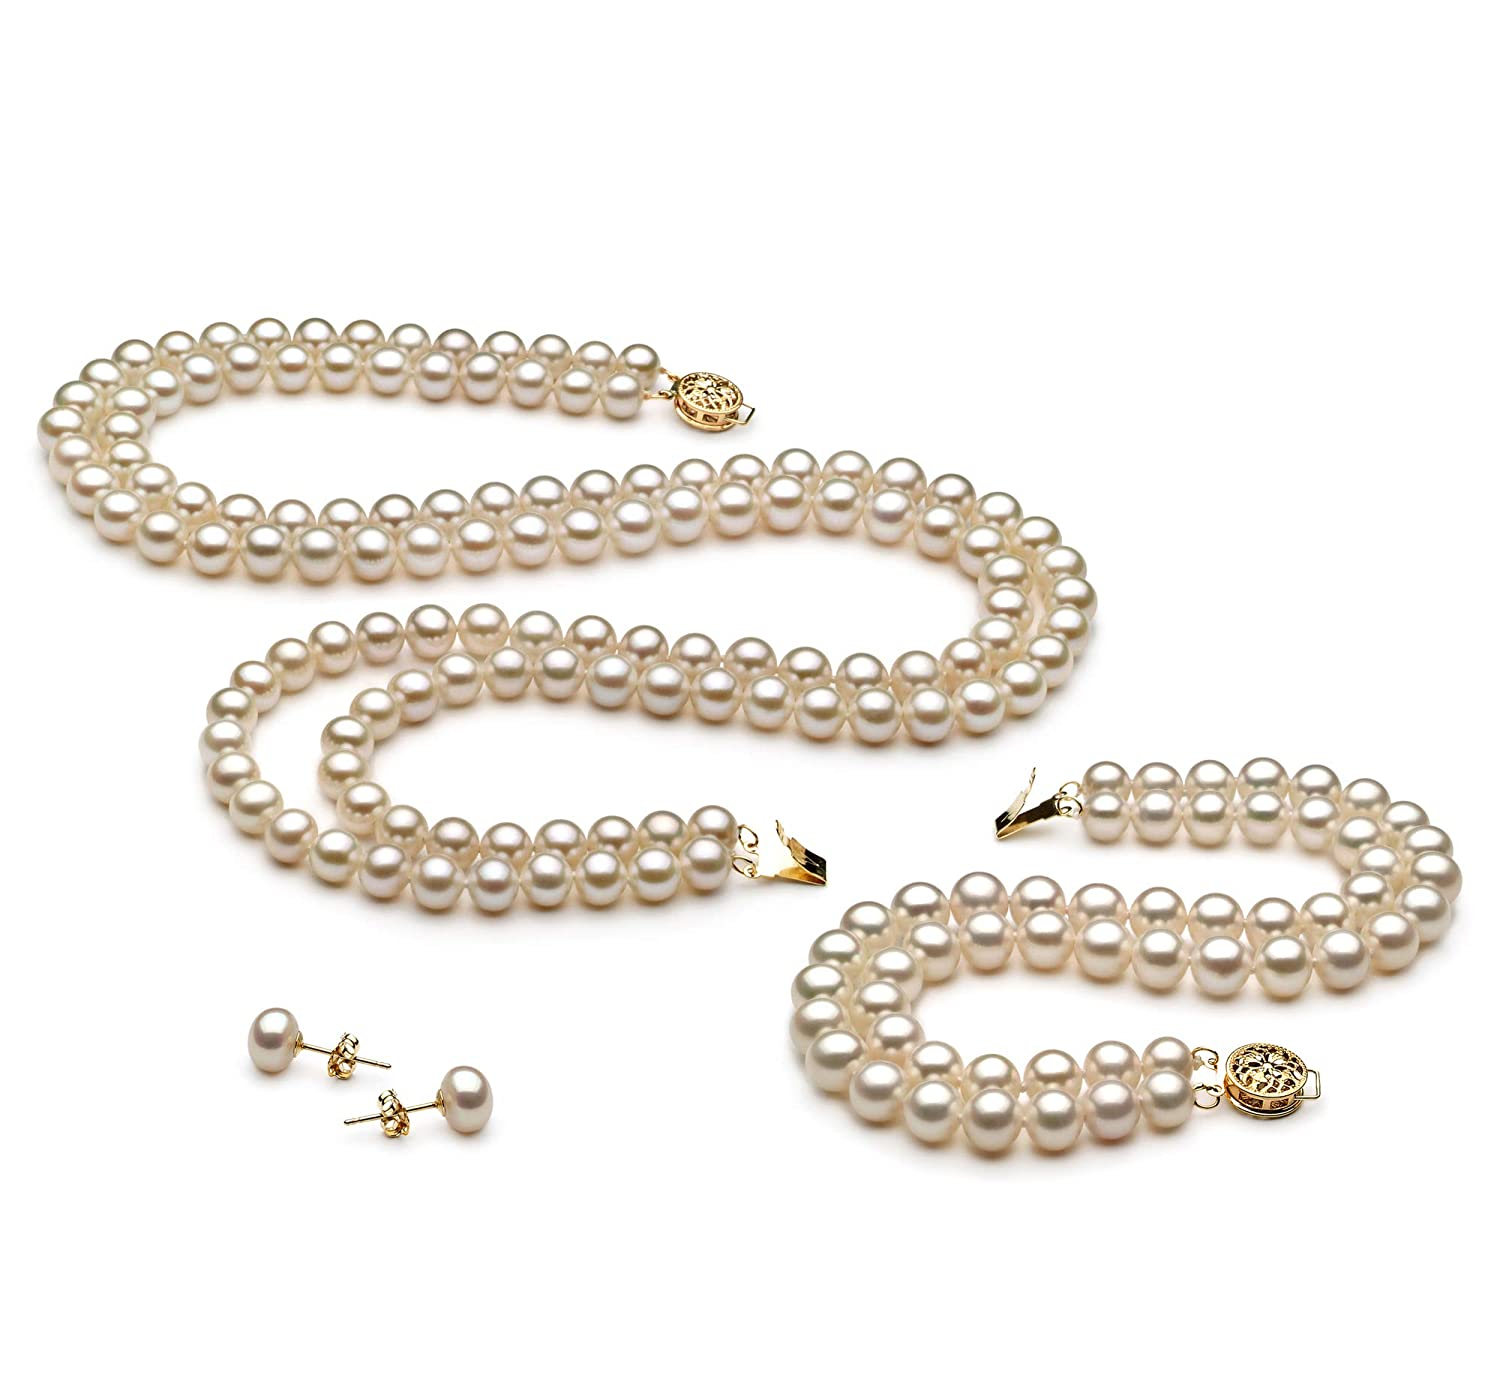 78a5e70945a70 Liska White 6-7mm Double Strand AA Quality Freshwater Cultured Pearl Set  for Women-16 in Chocker Length